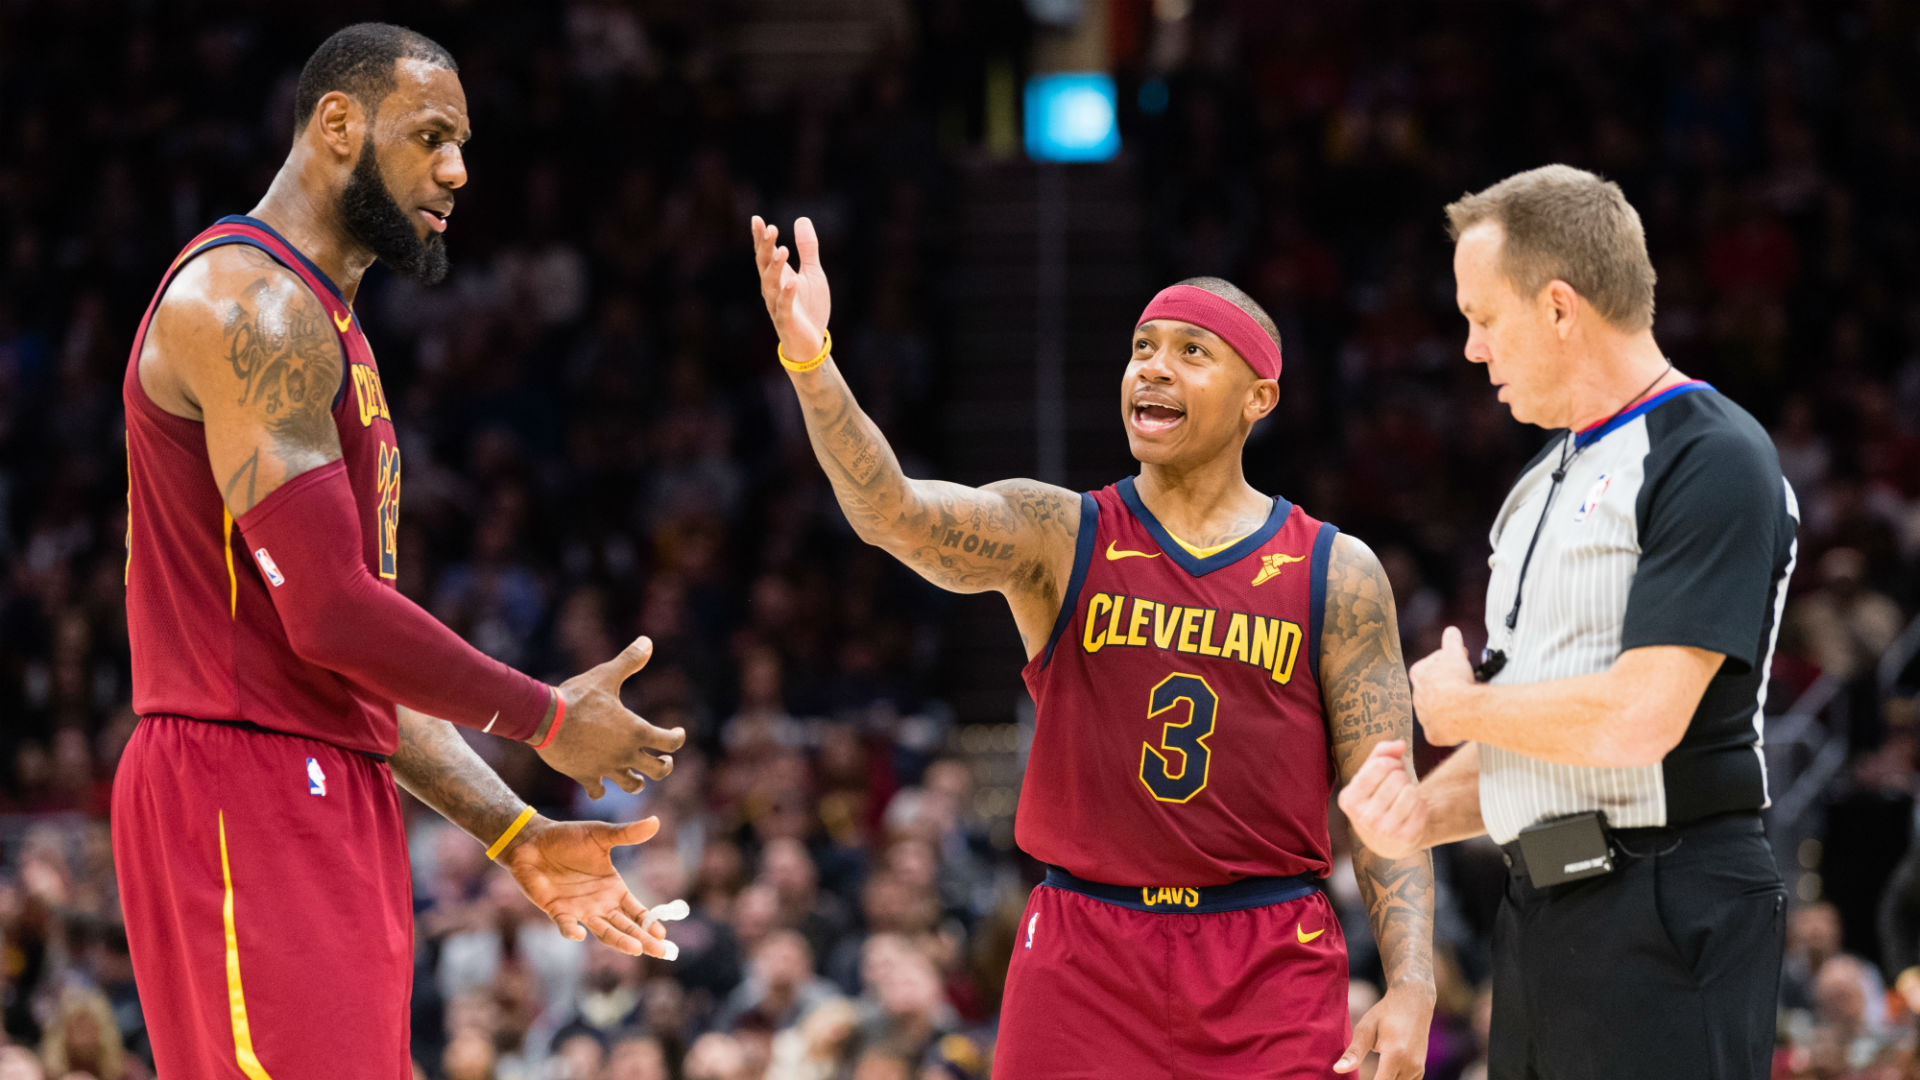 Isaiah Thomas and Danny Ainge Squash Their Beef